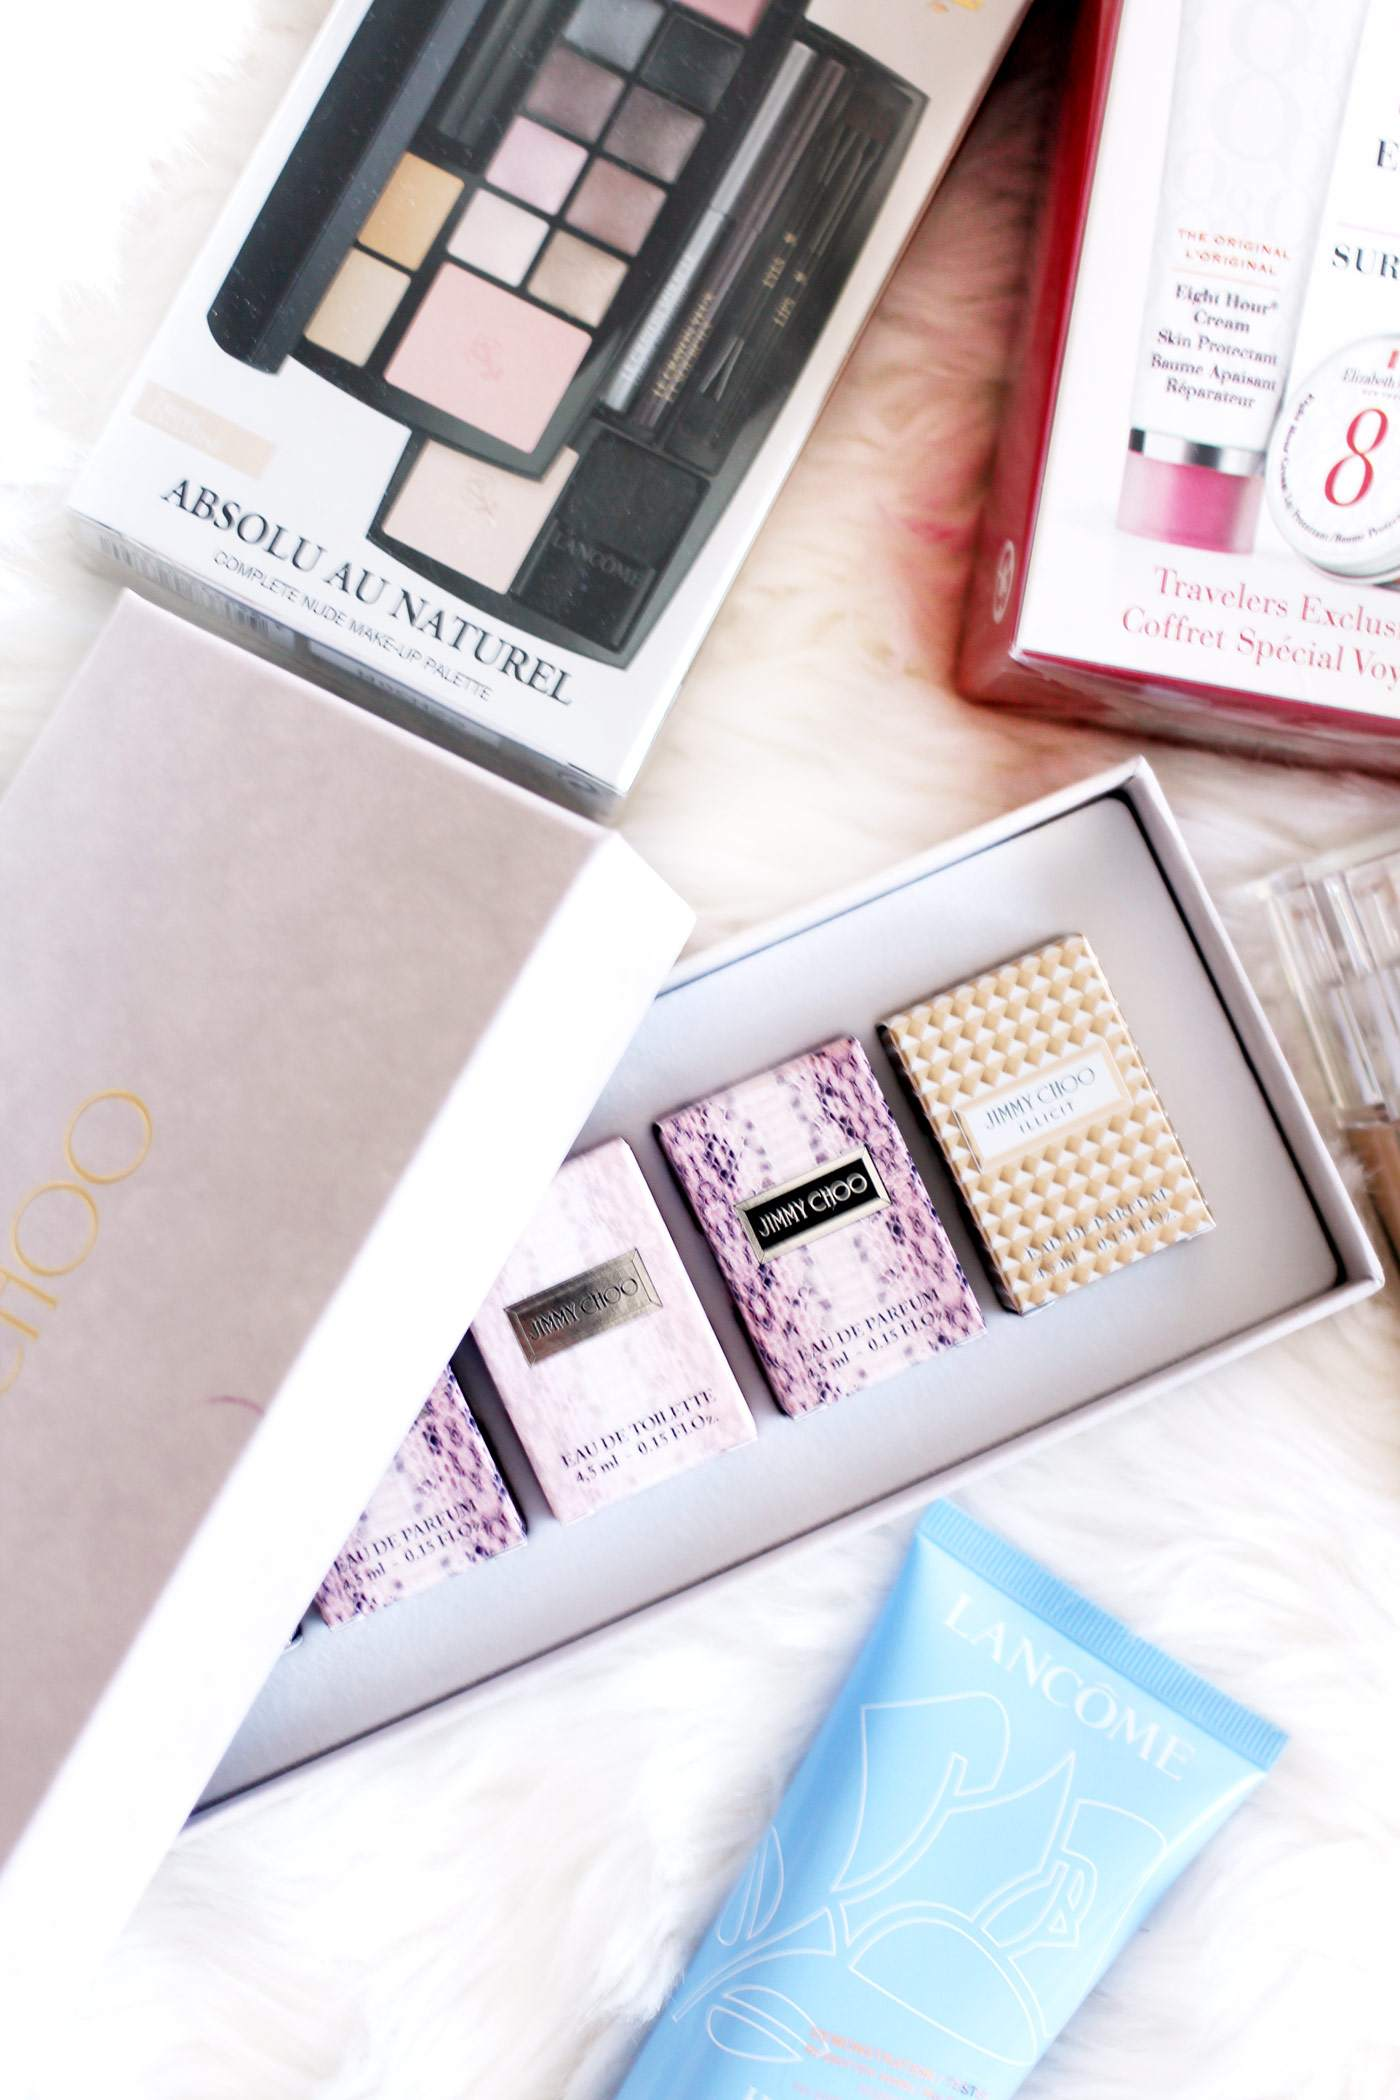 world-durt-free-haul-YSL-lipsticks-exclusives-jimmy-choo-mini-lancome-absolu-au-naturel